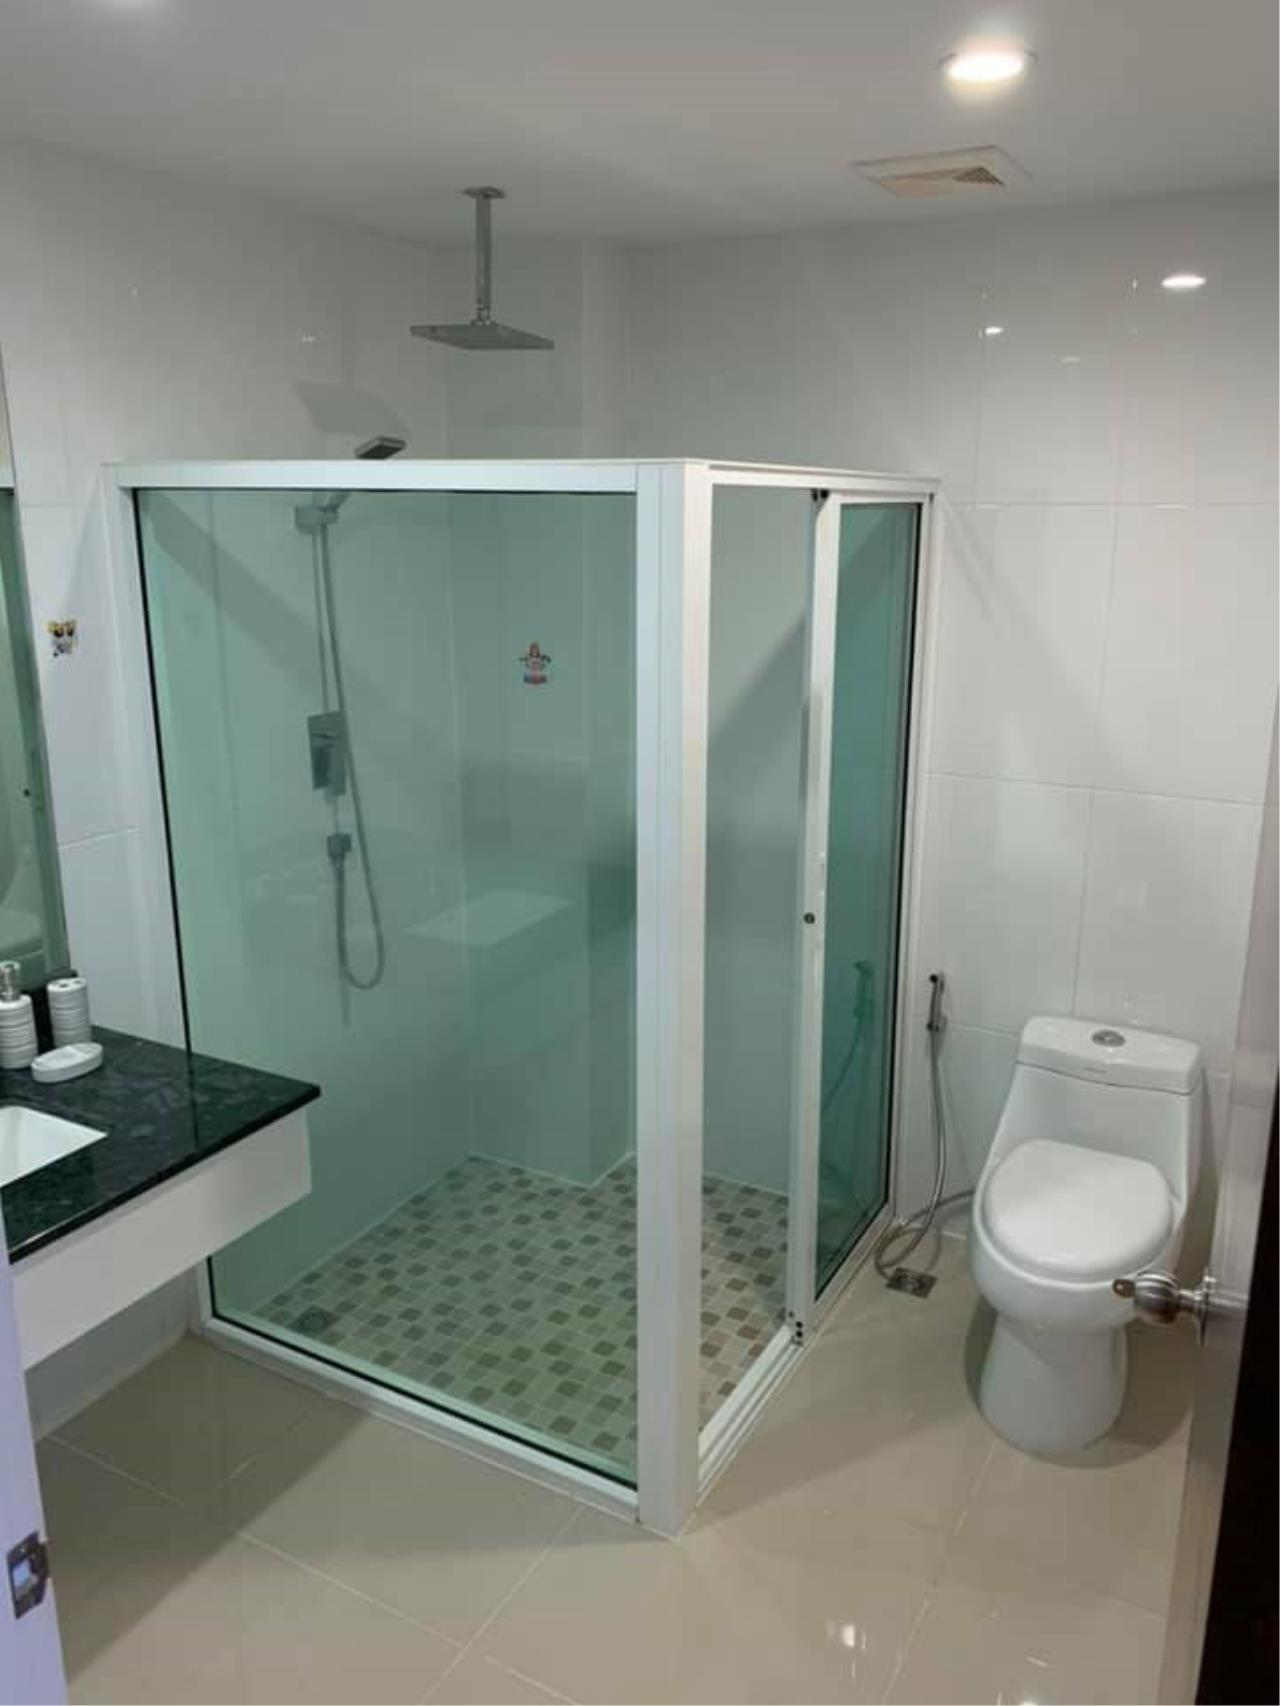 Agent Thawanrat Agency's Condo for rental TOURMALINE GOLD SATHORN – TAKSIN Near BTS.Krung Thon Buri. 1 bedroom,1 bathroom. size 40 sqm.Floor 10 th. fully furnished Ready to move in 15